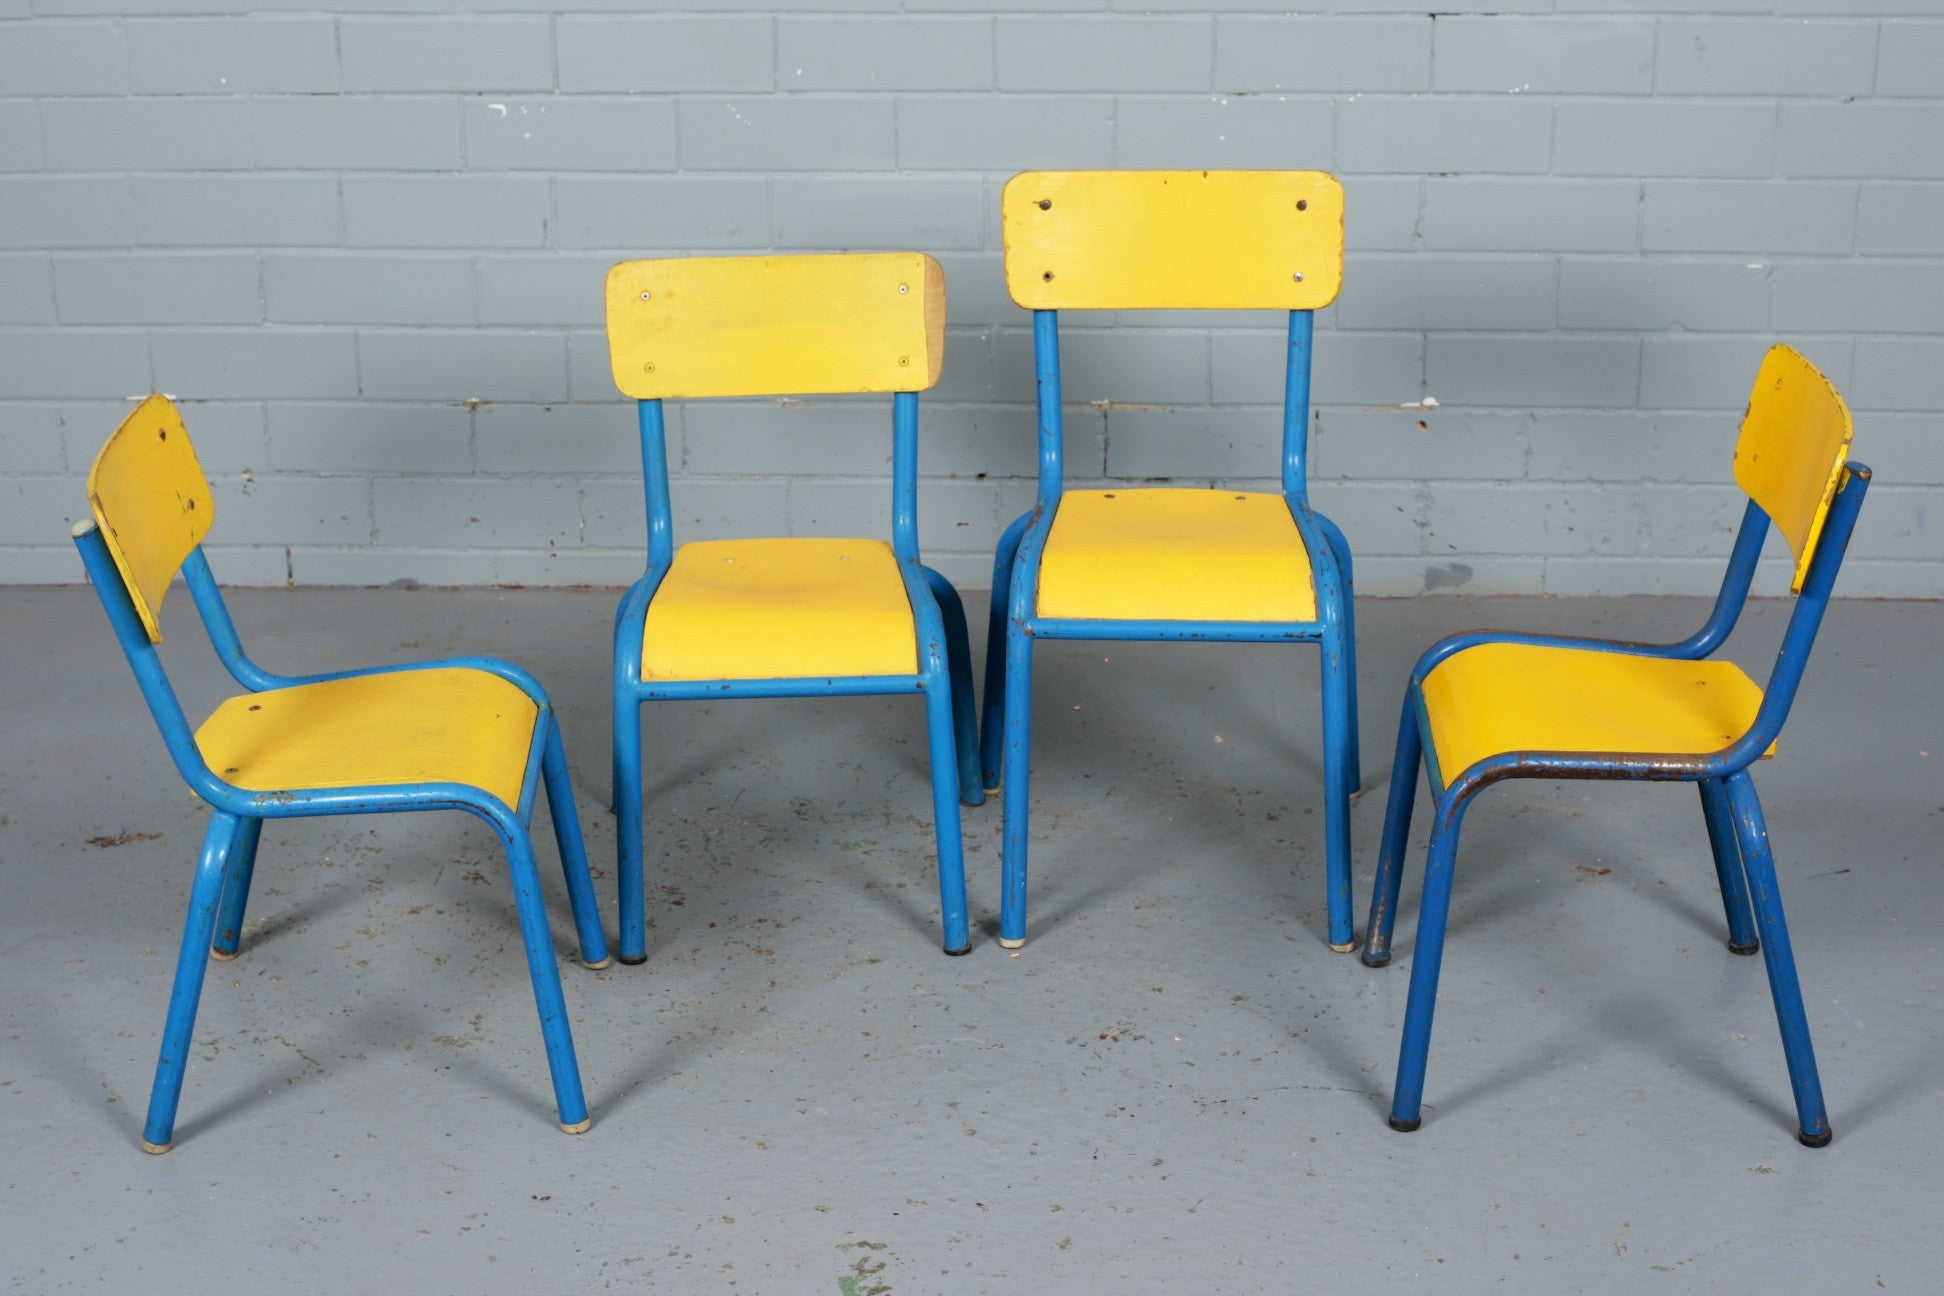 French stackable wooden and steel children's chairs for sale at Industrious Interiors, an online vintage furniture and homeware store based in Nottingham, England.